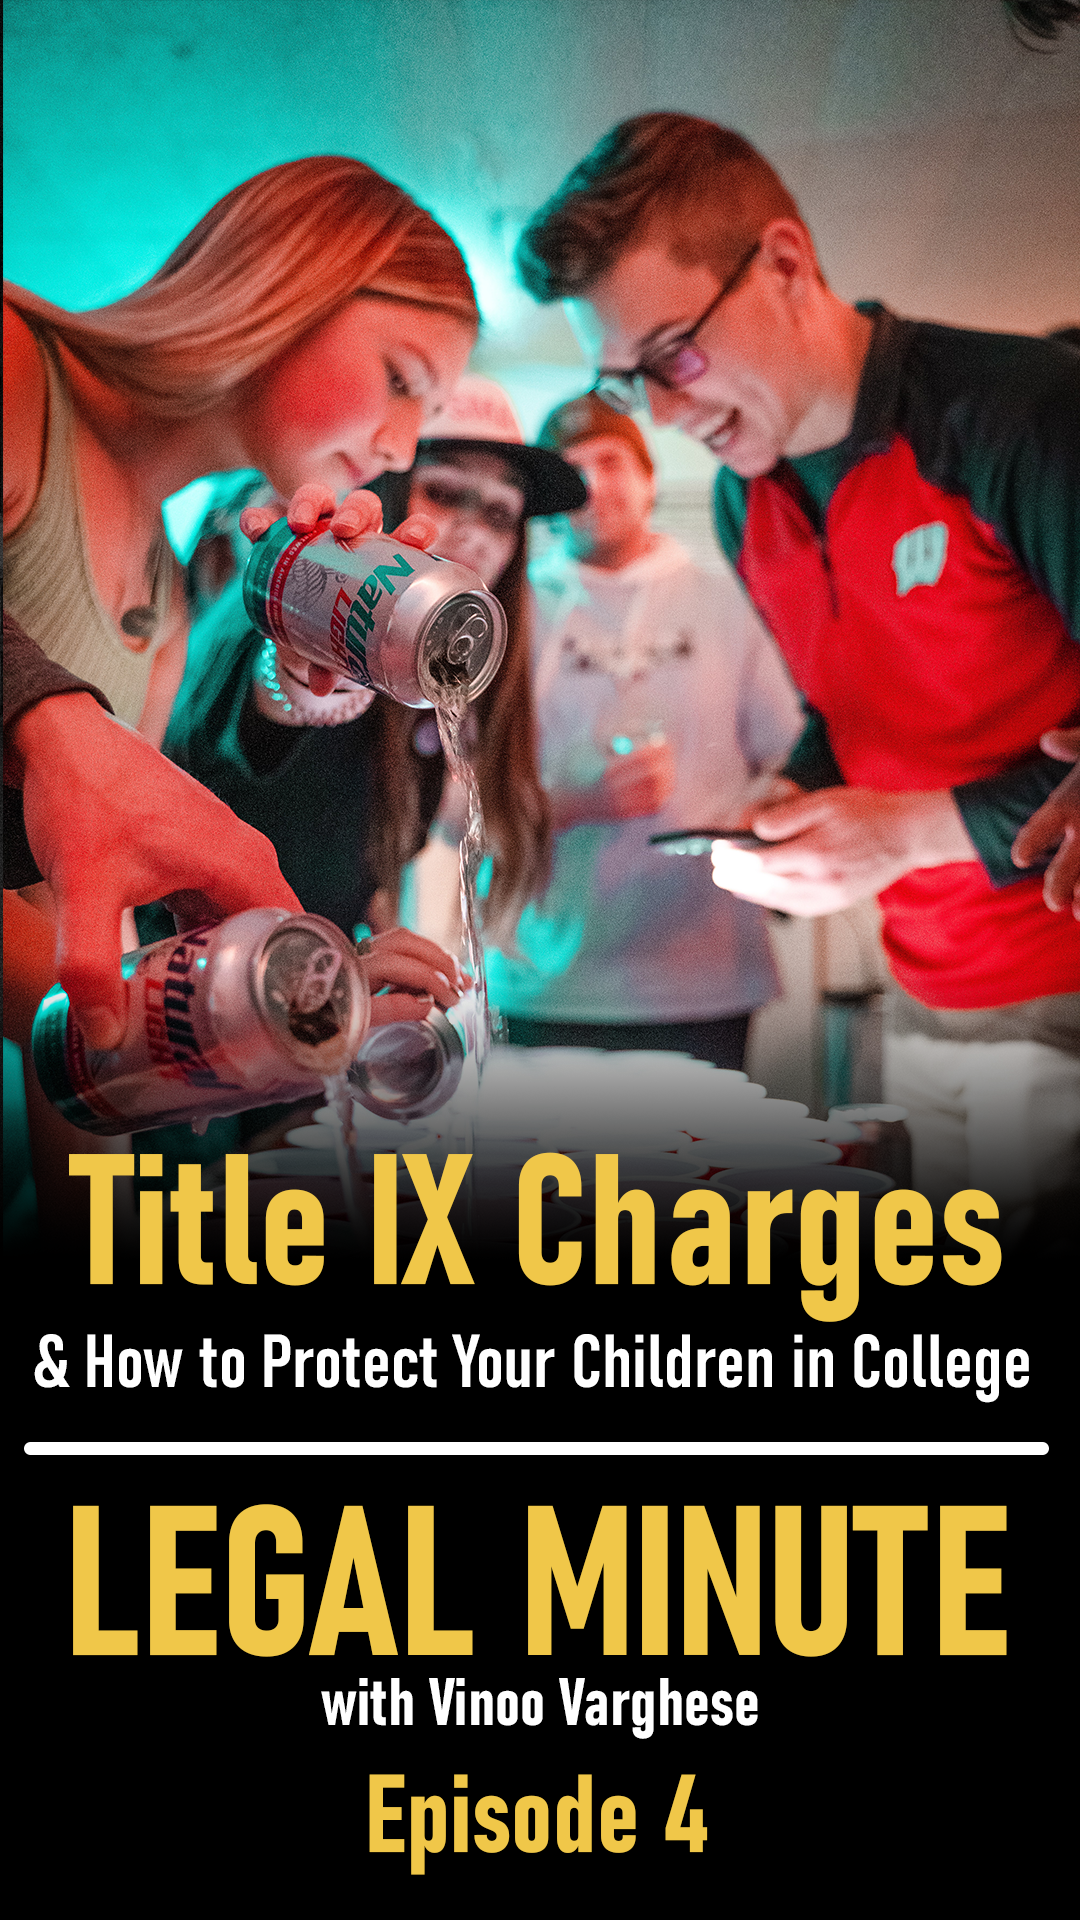 TItle IX Charges & How to Protect Your Children in College – Legal Minute Ep. 4